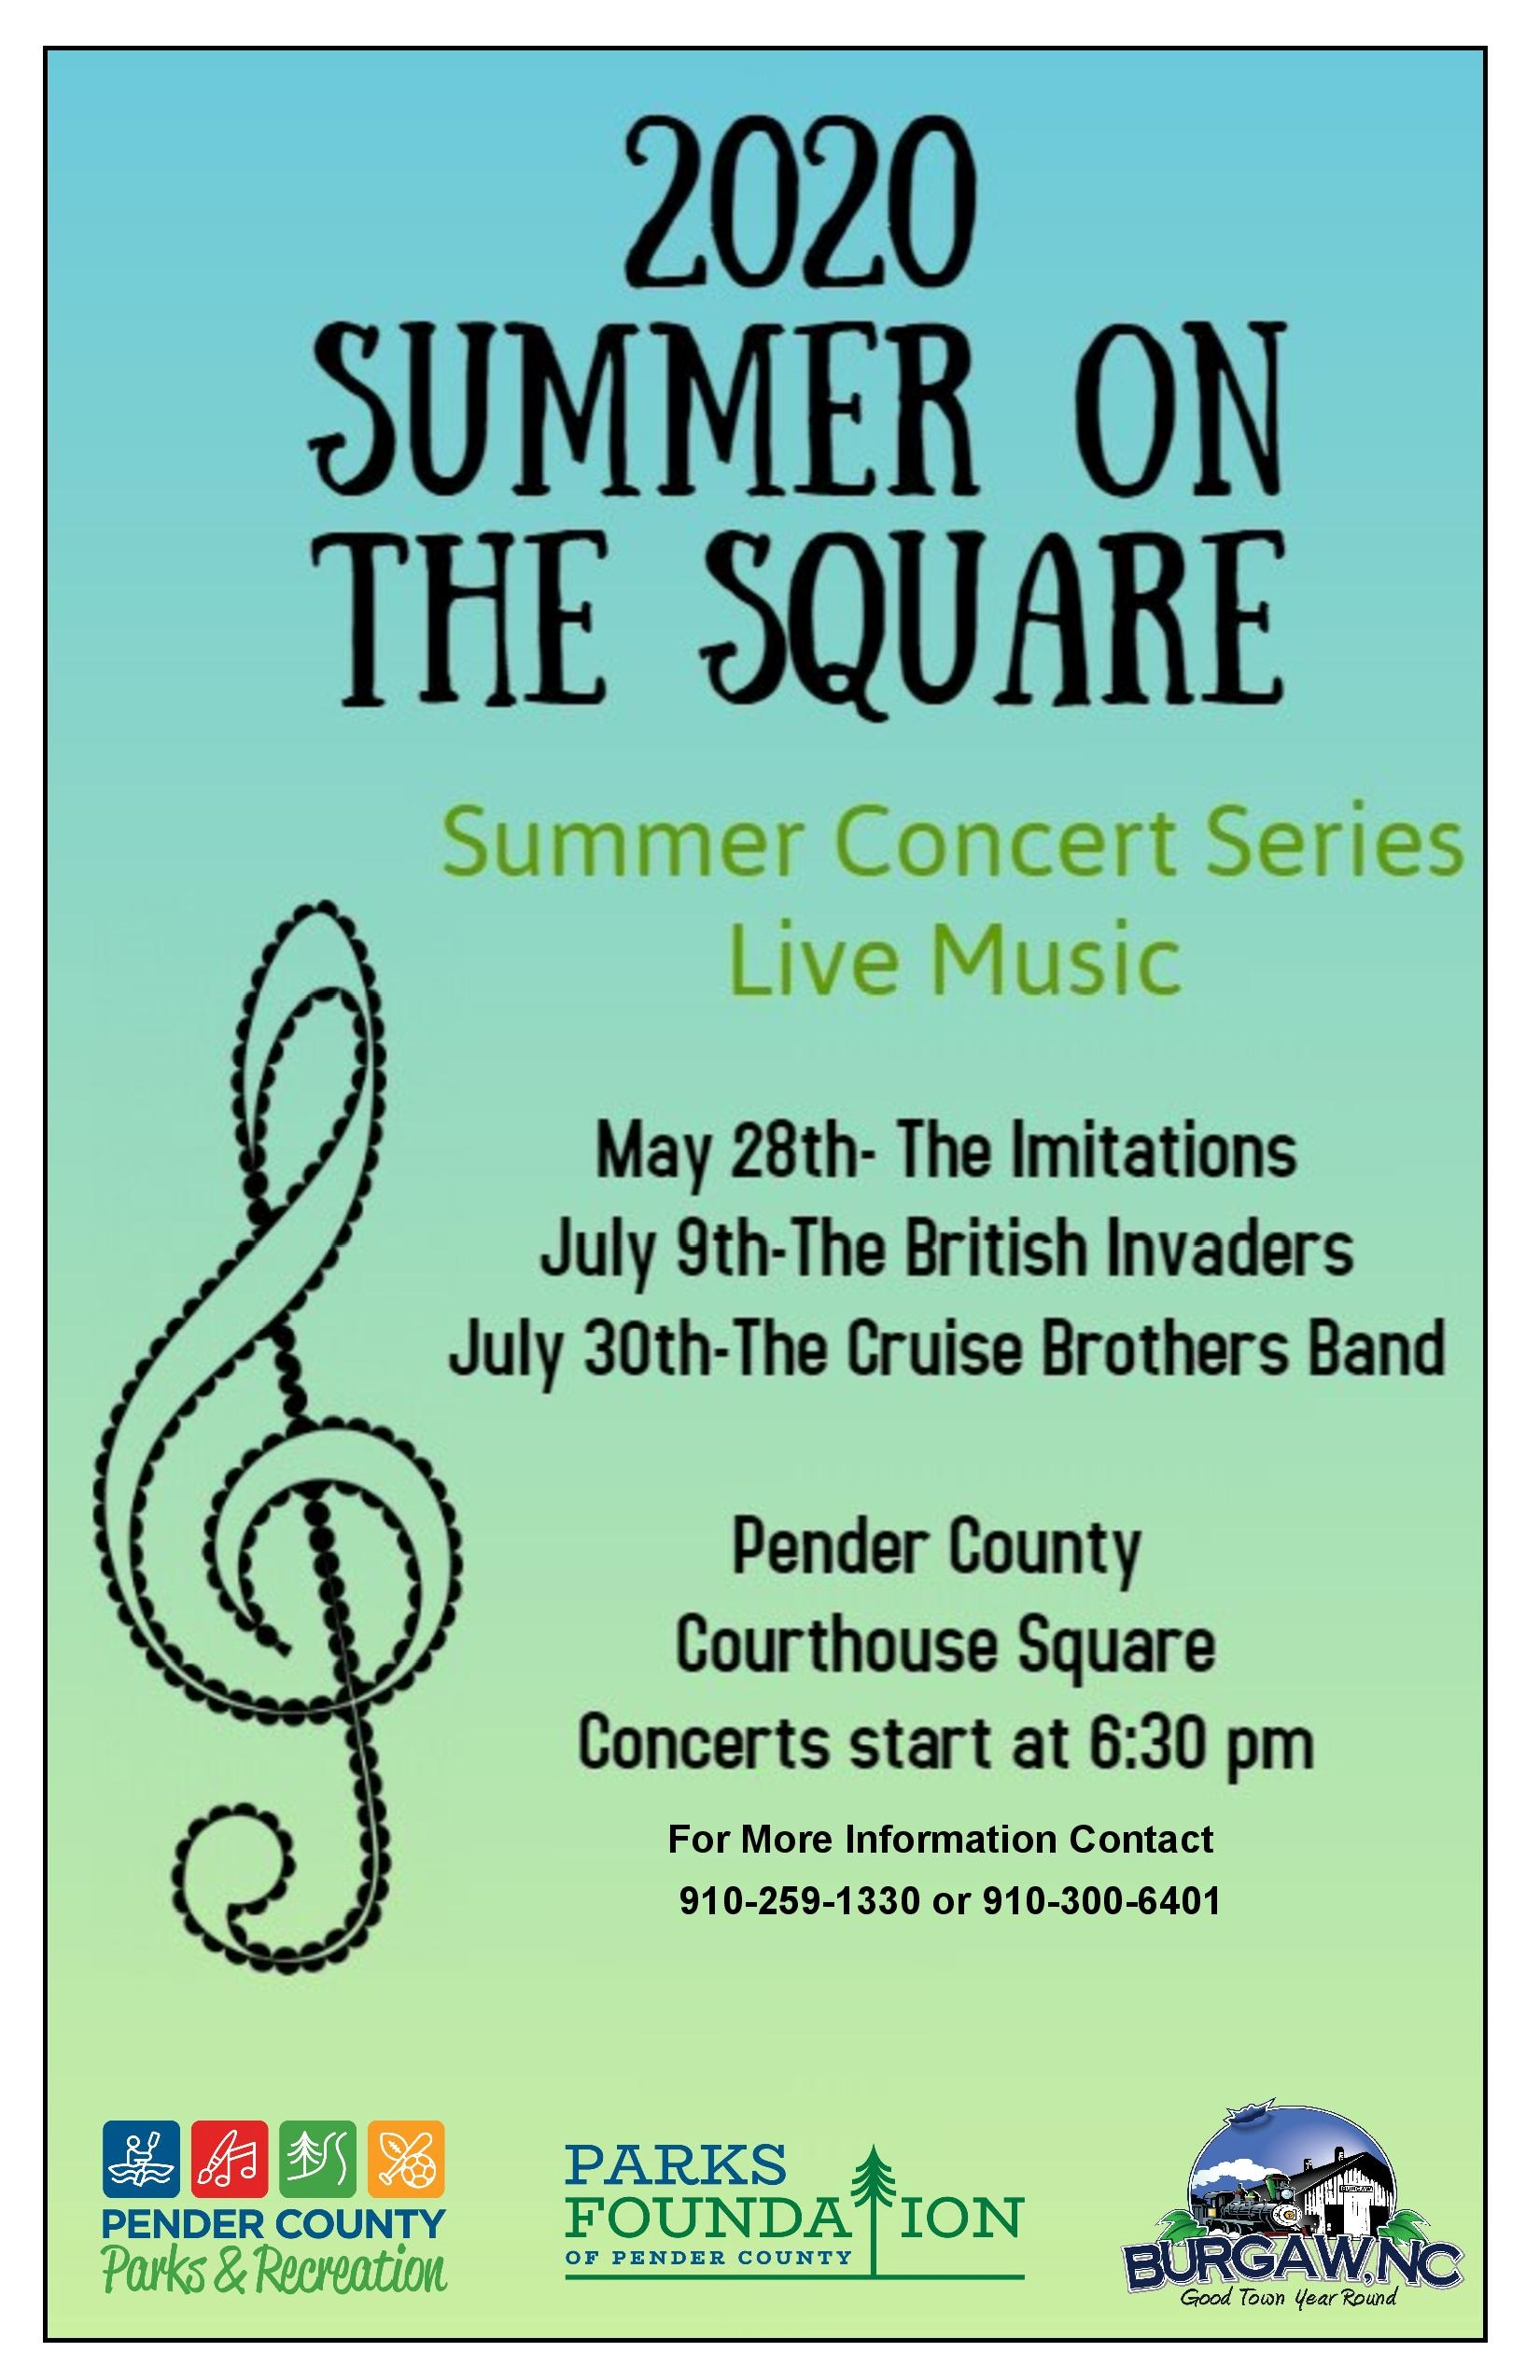 2020 Summer On The Square